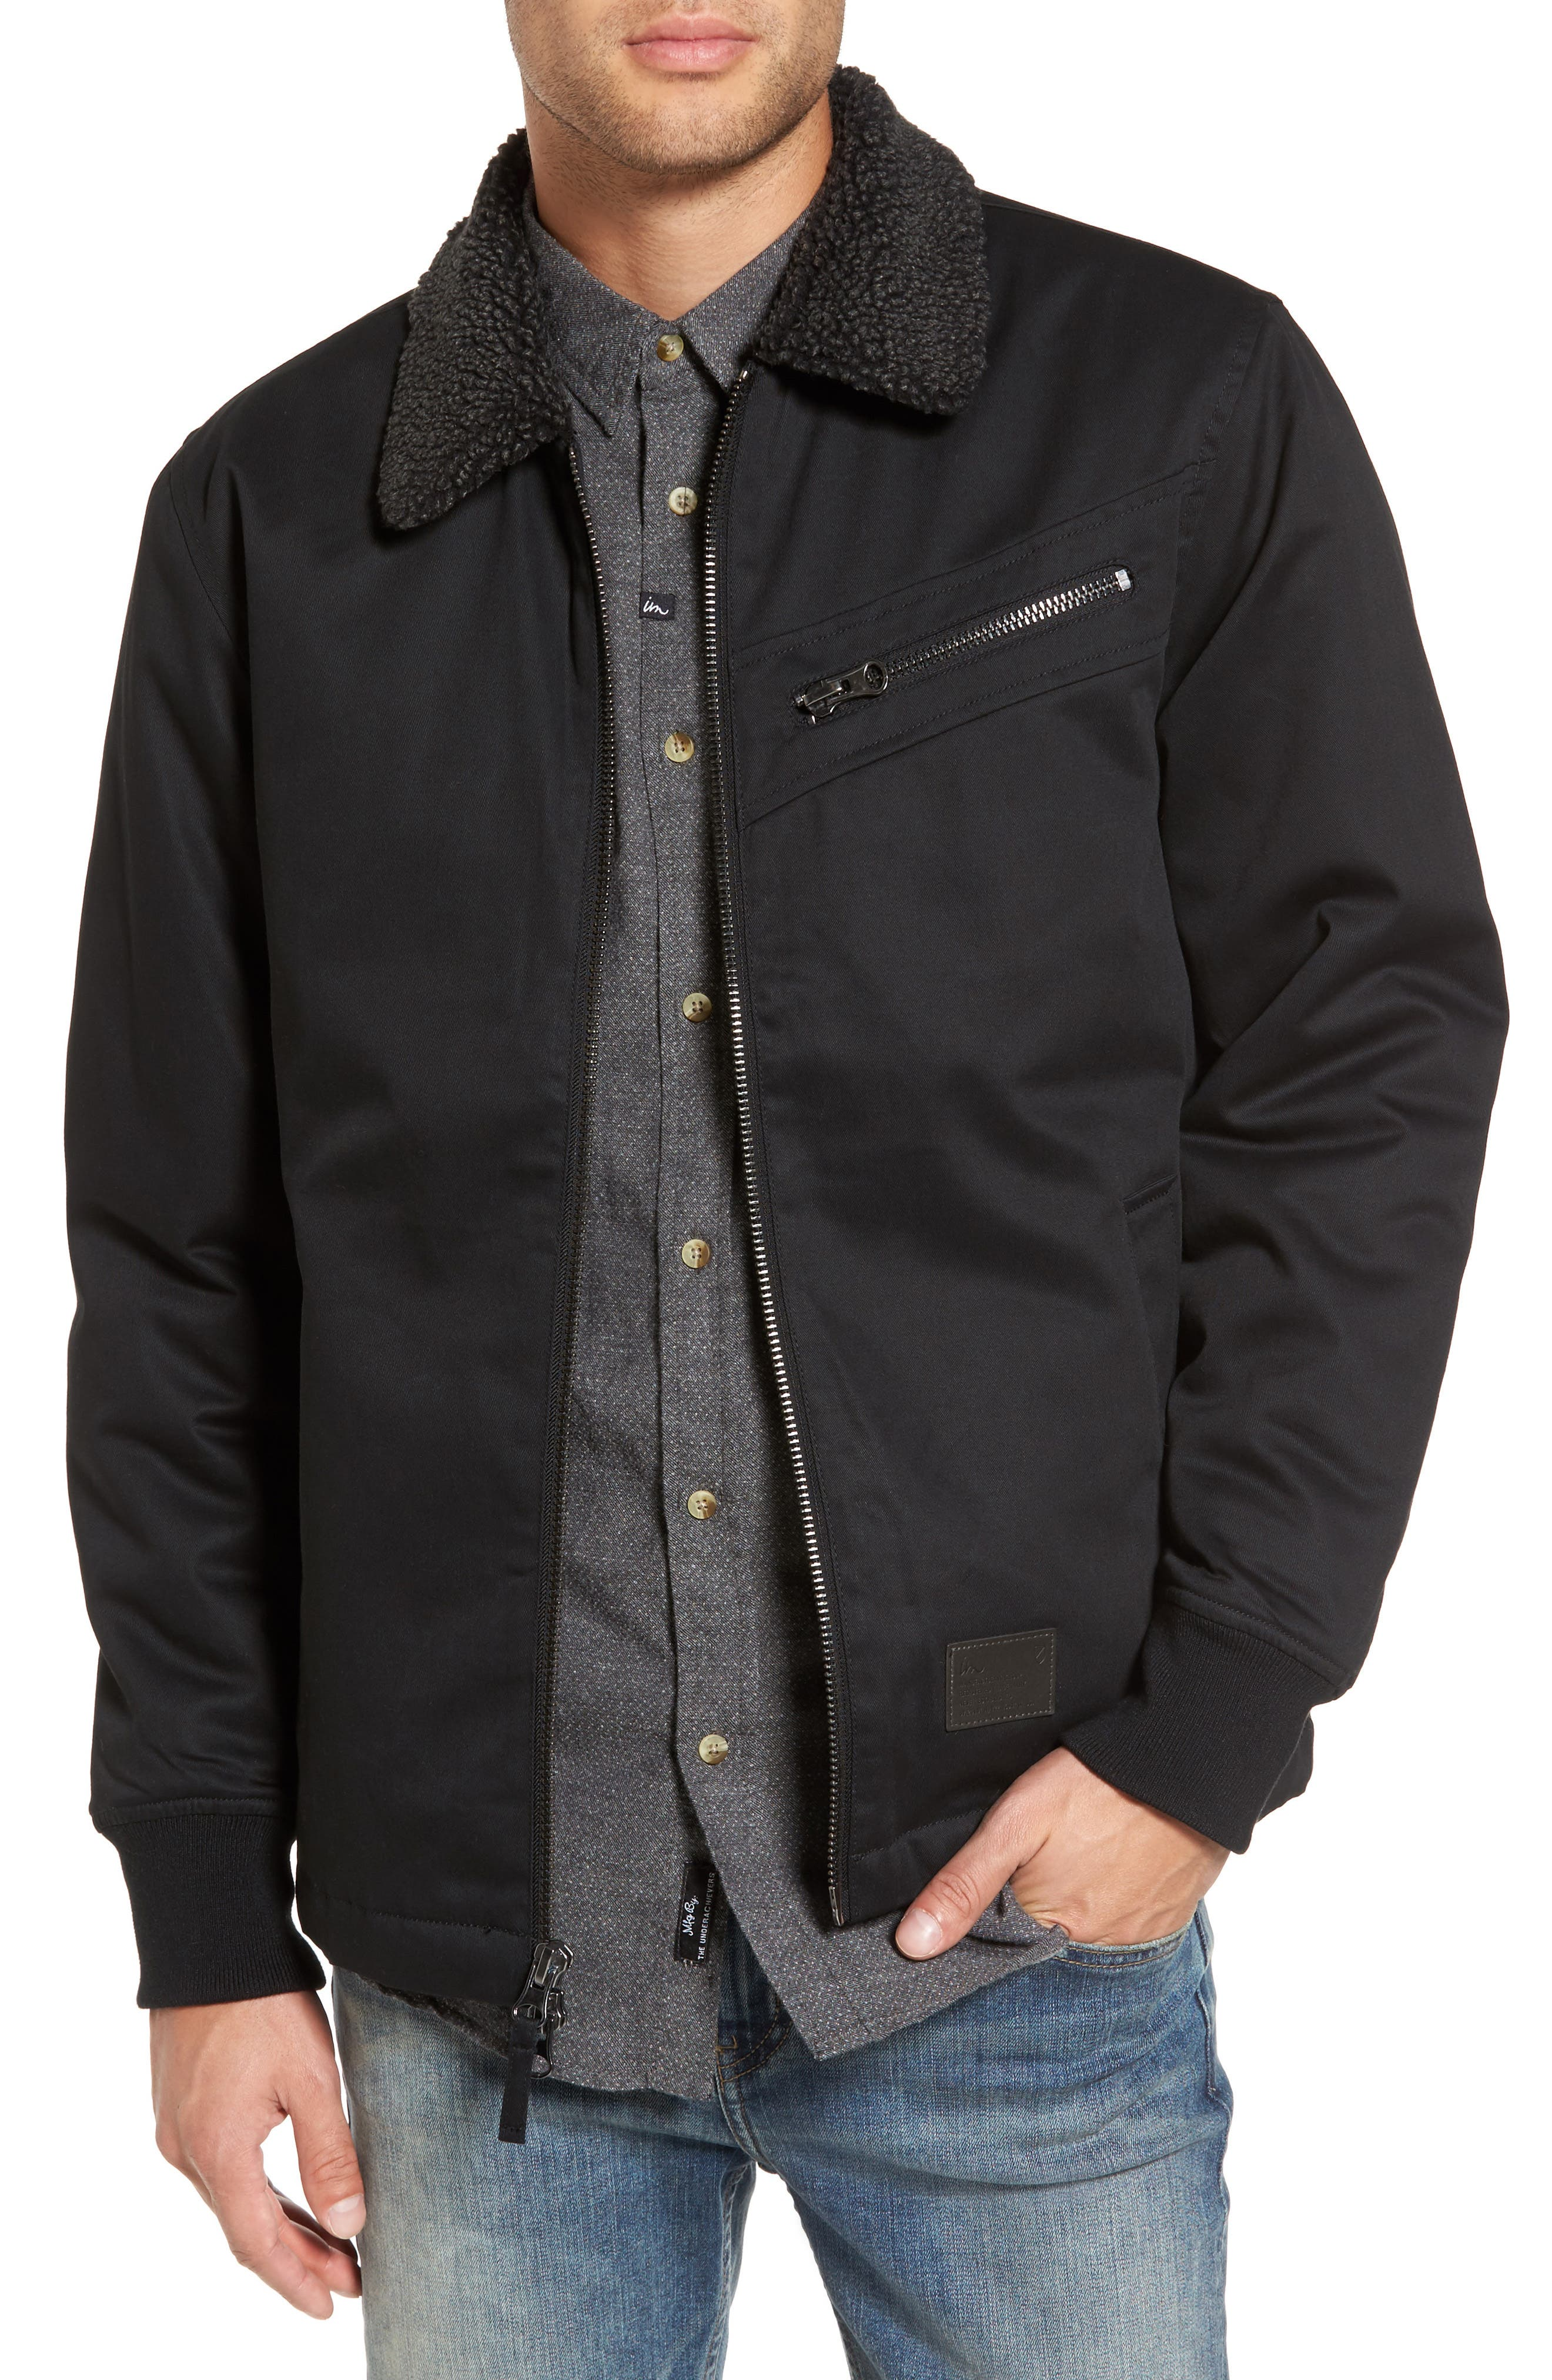 Main Image - Imperial Motion Maddox Jacket